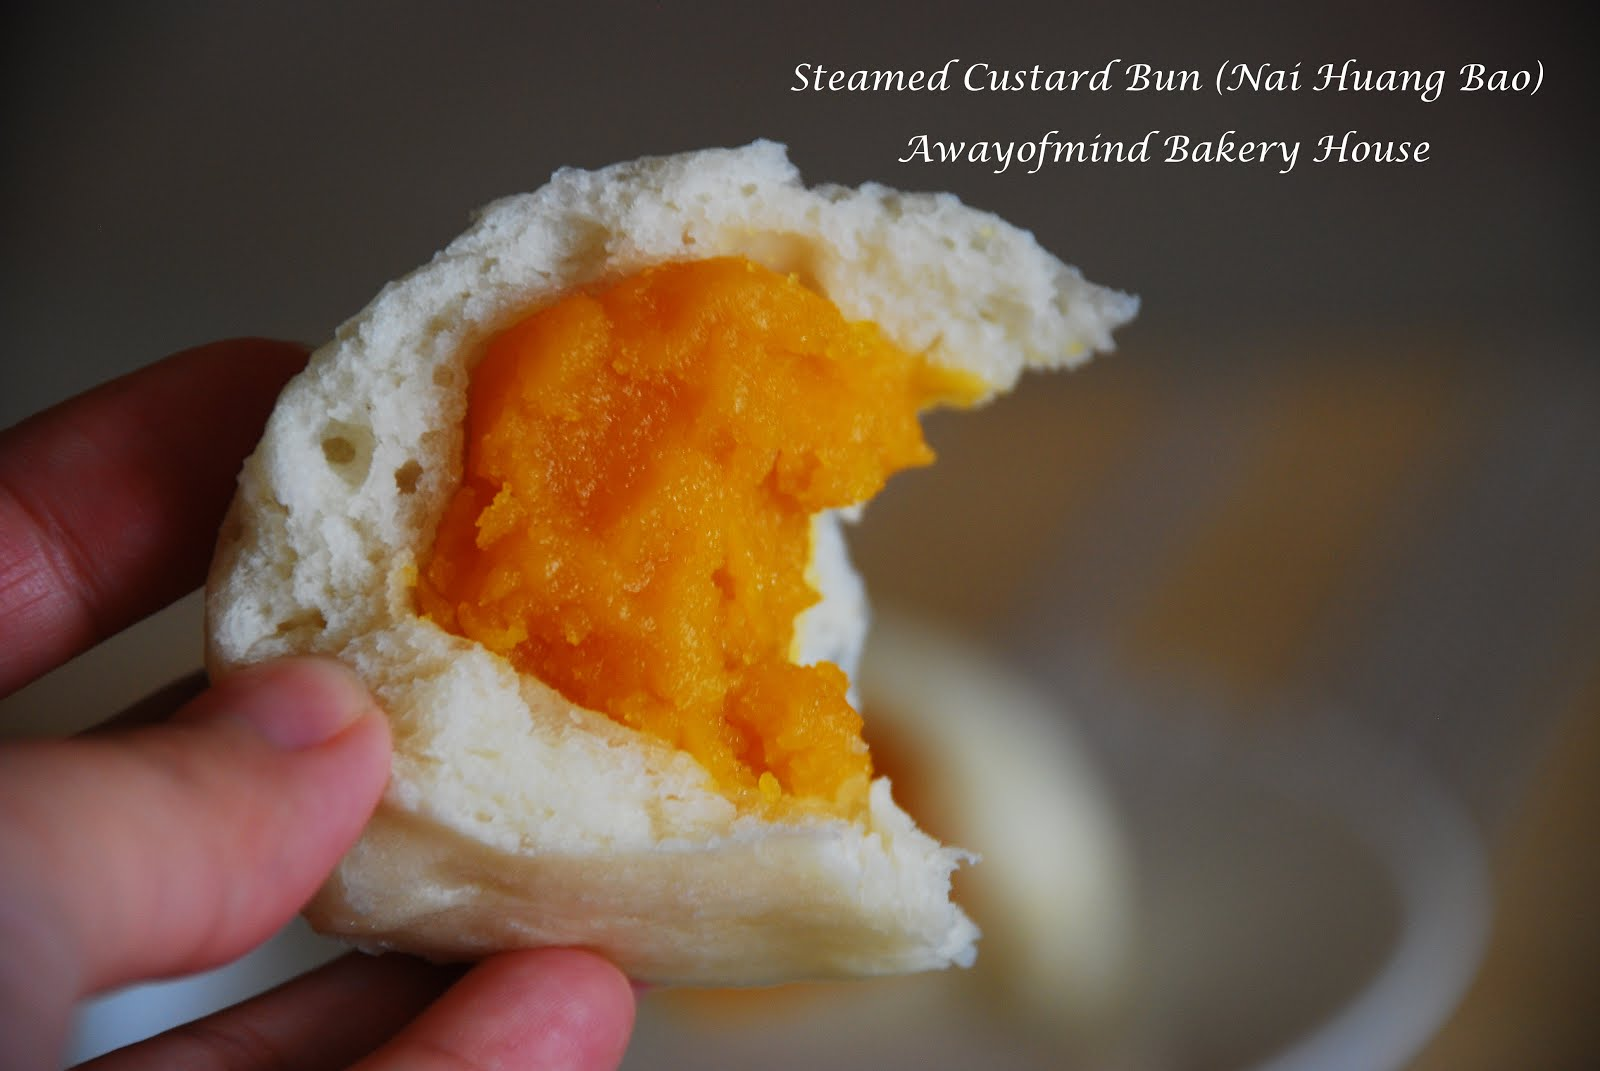 Steamed Custard Bun